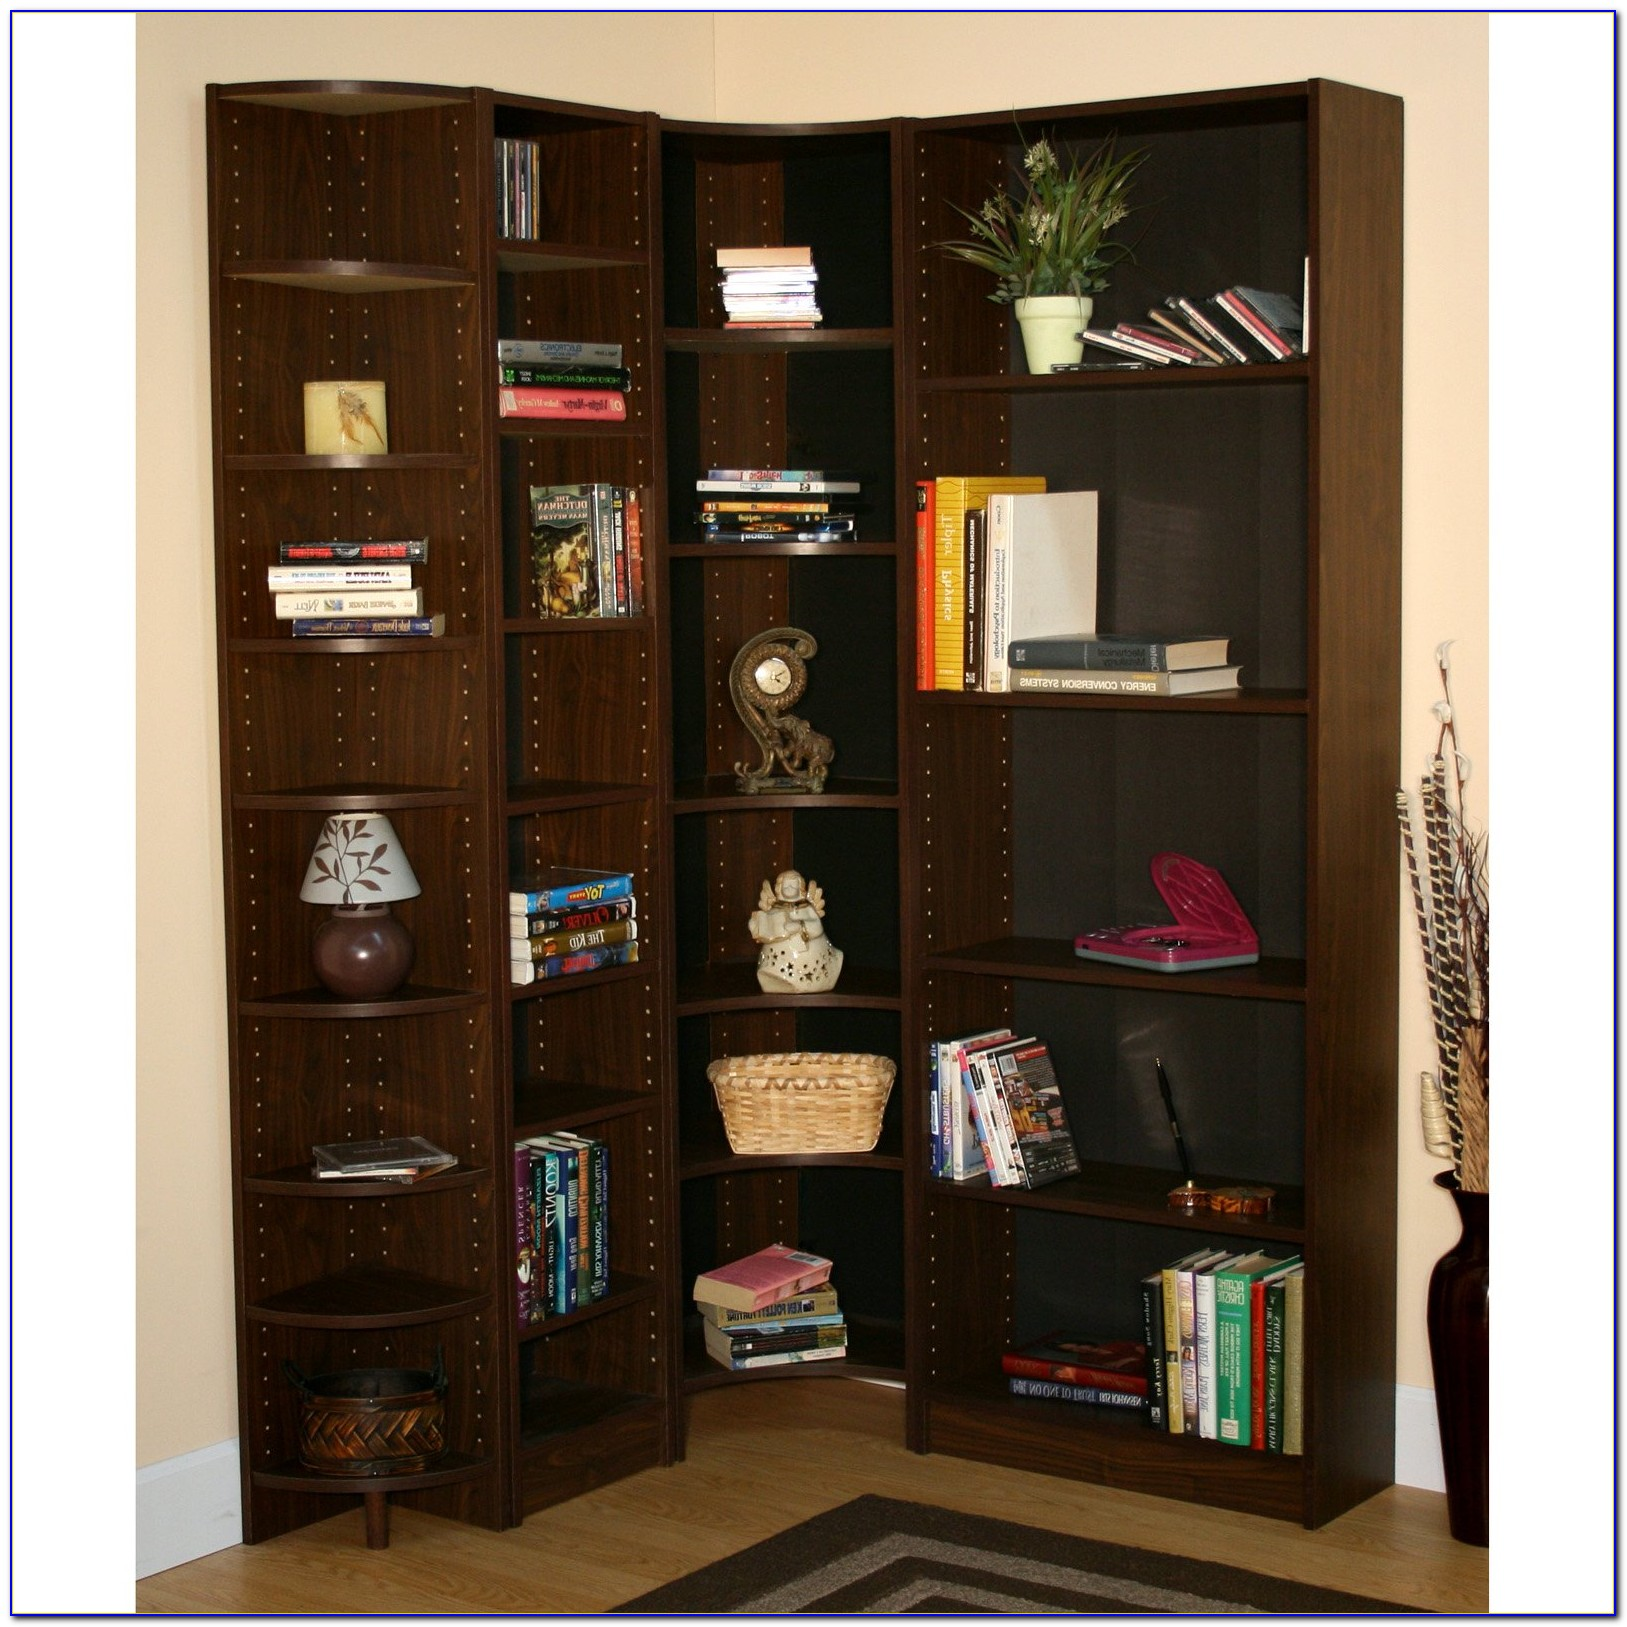 How To Build Your Own Wall Bookshelf